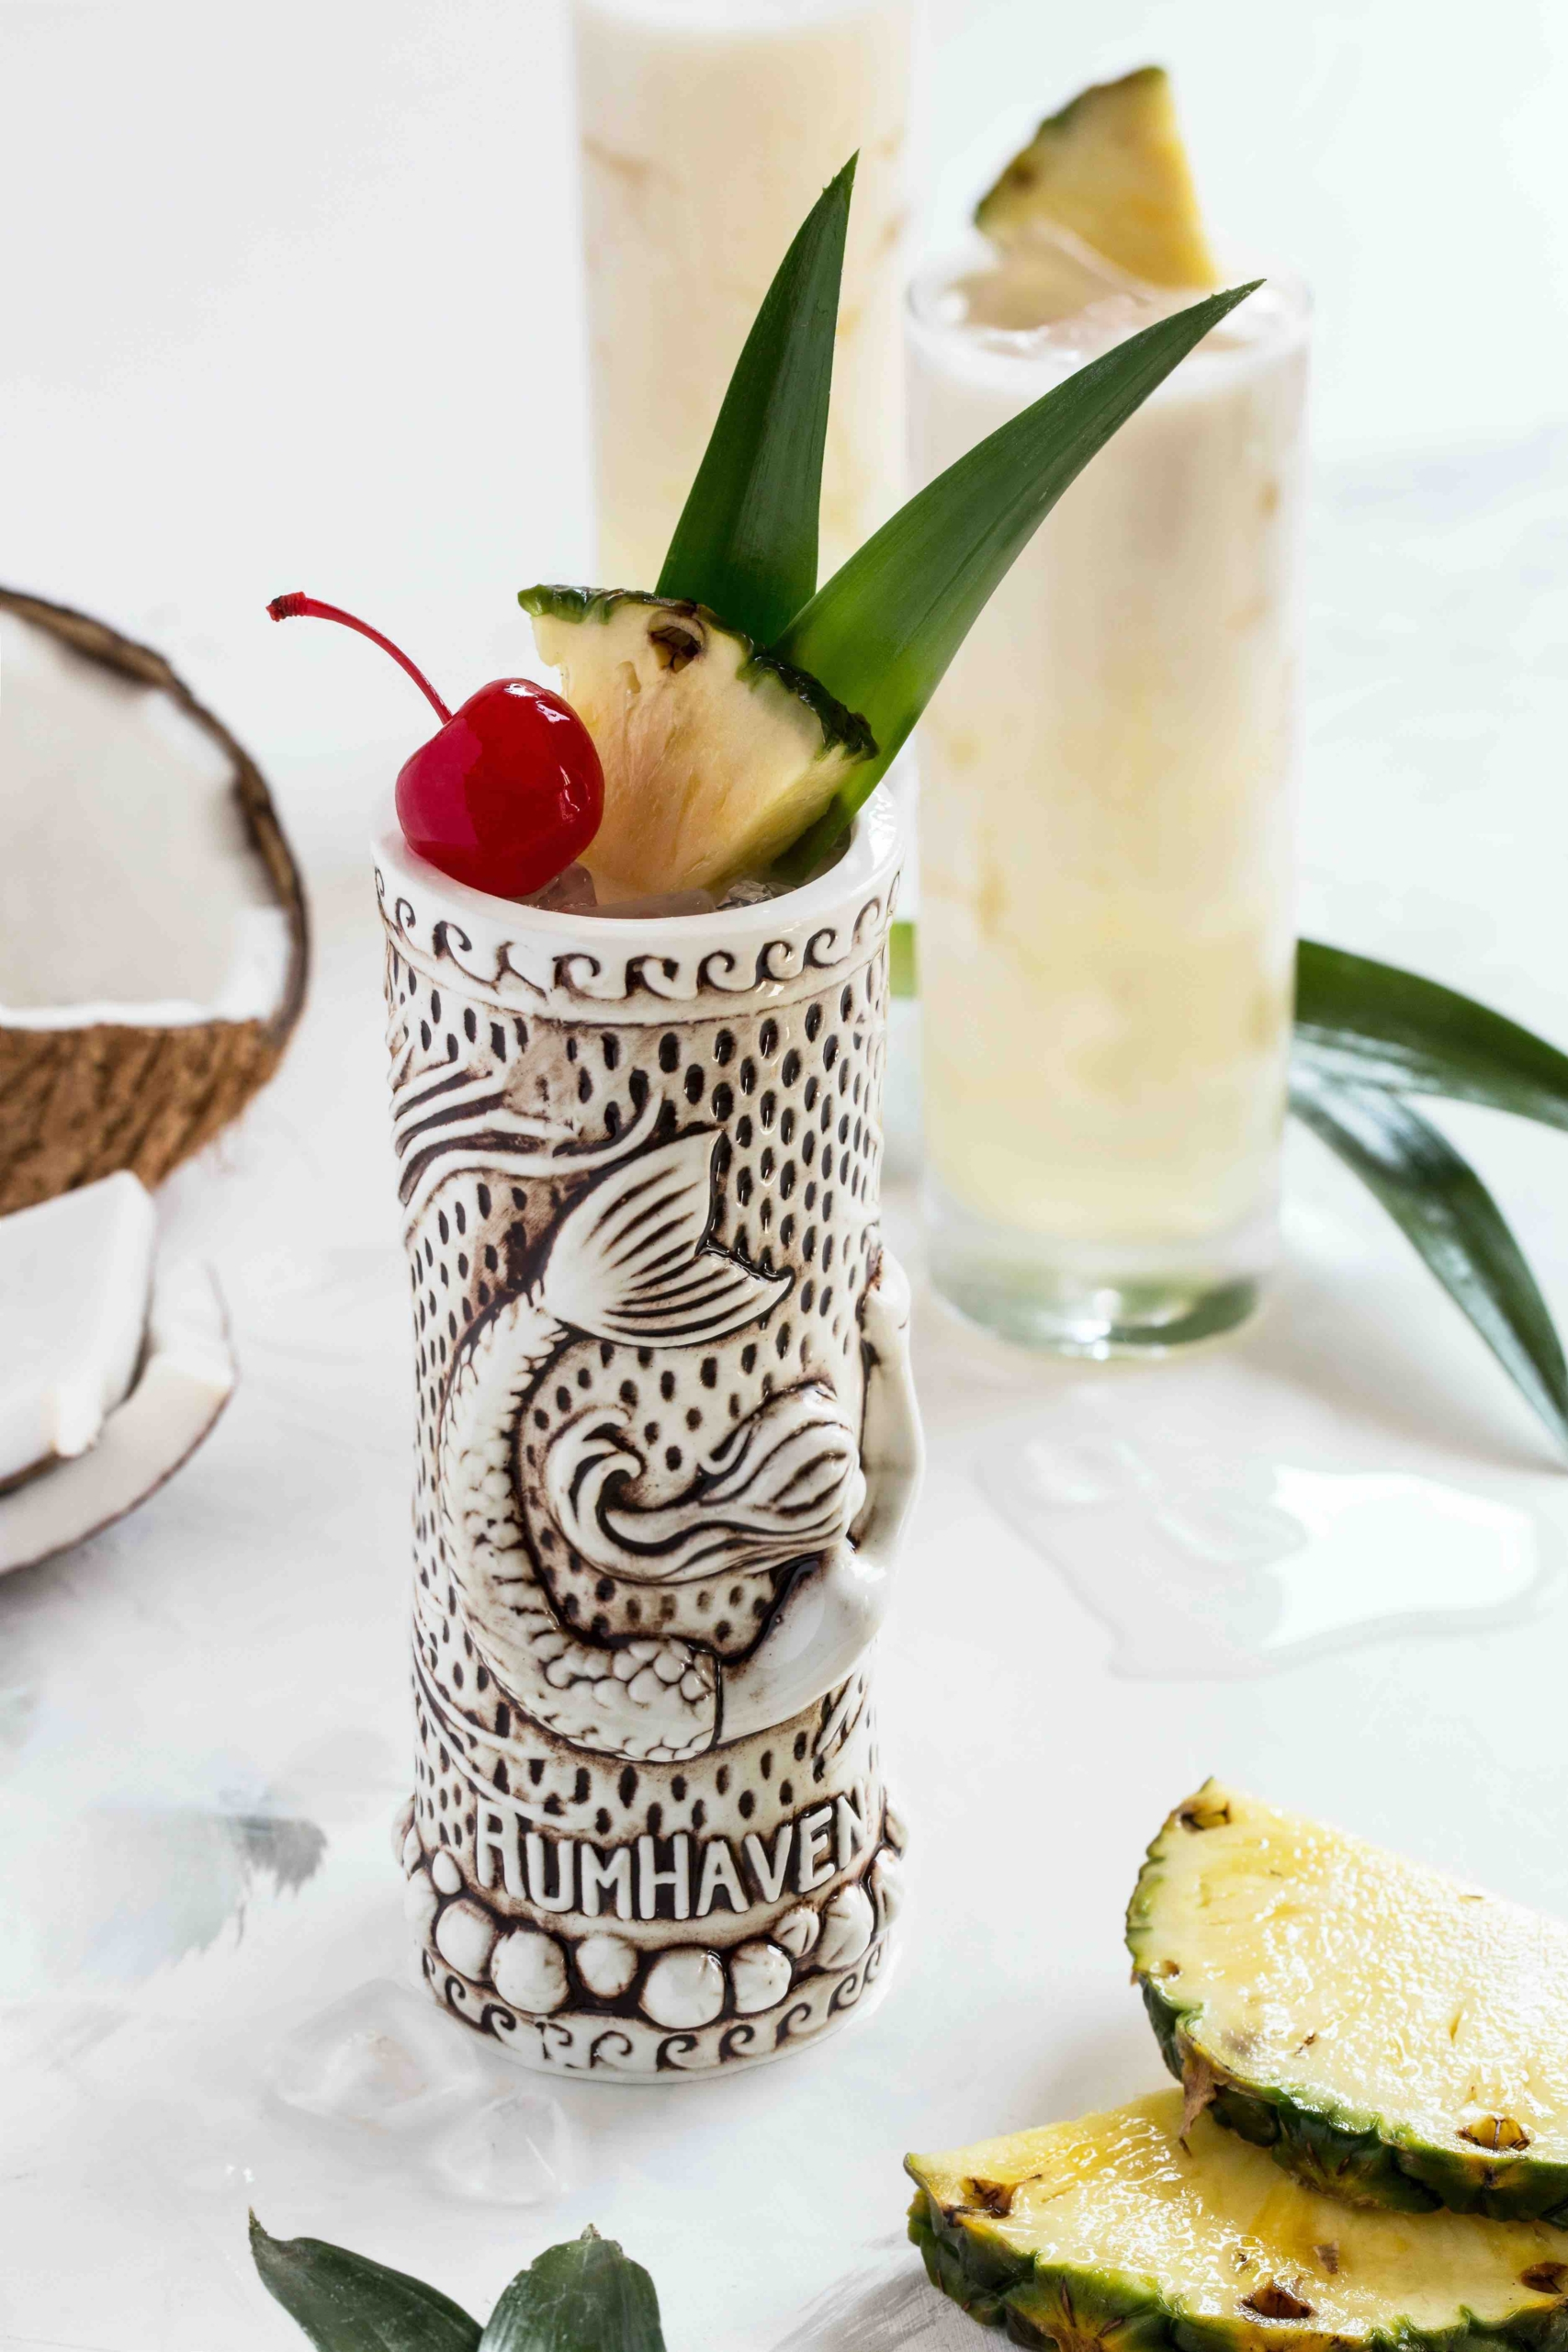 Our Guide To The Cocktails To Mix On World Cocktail Day